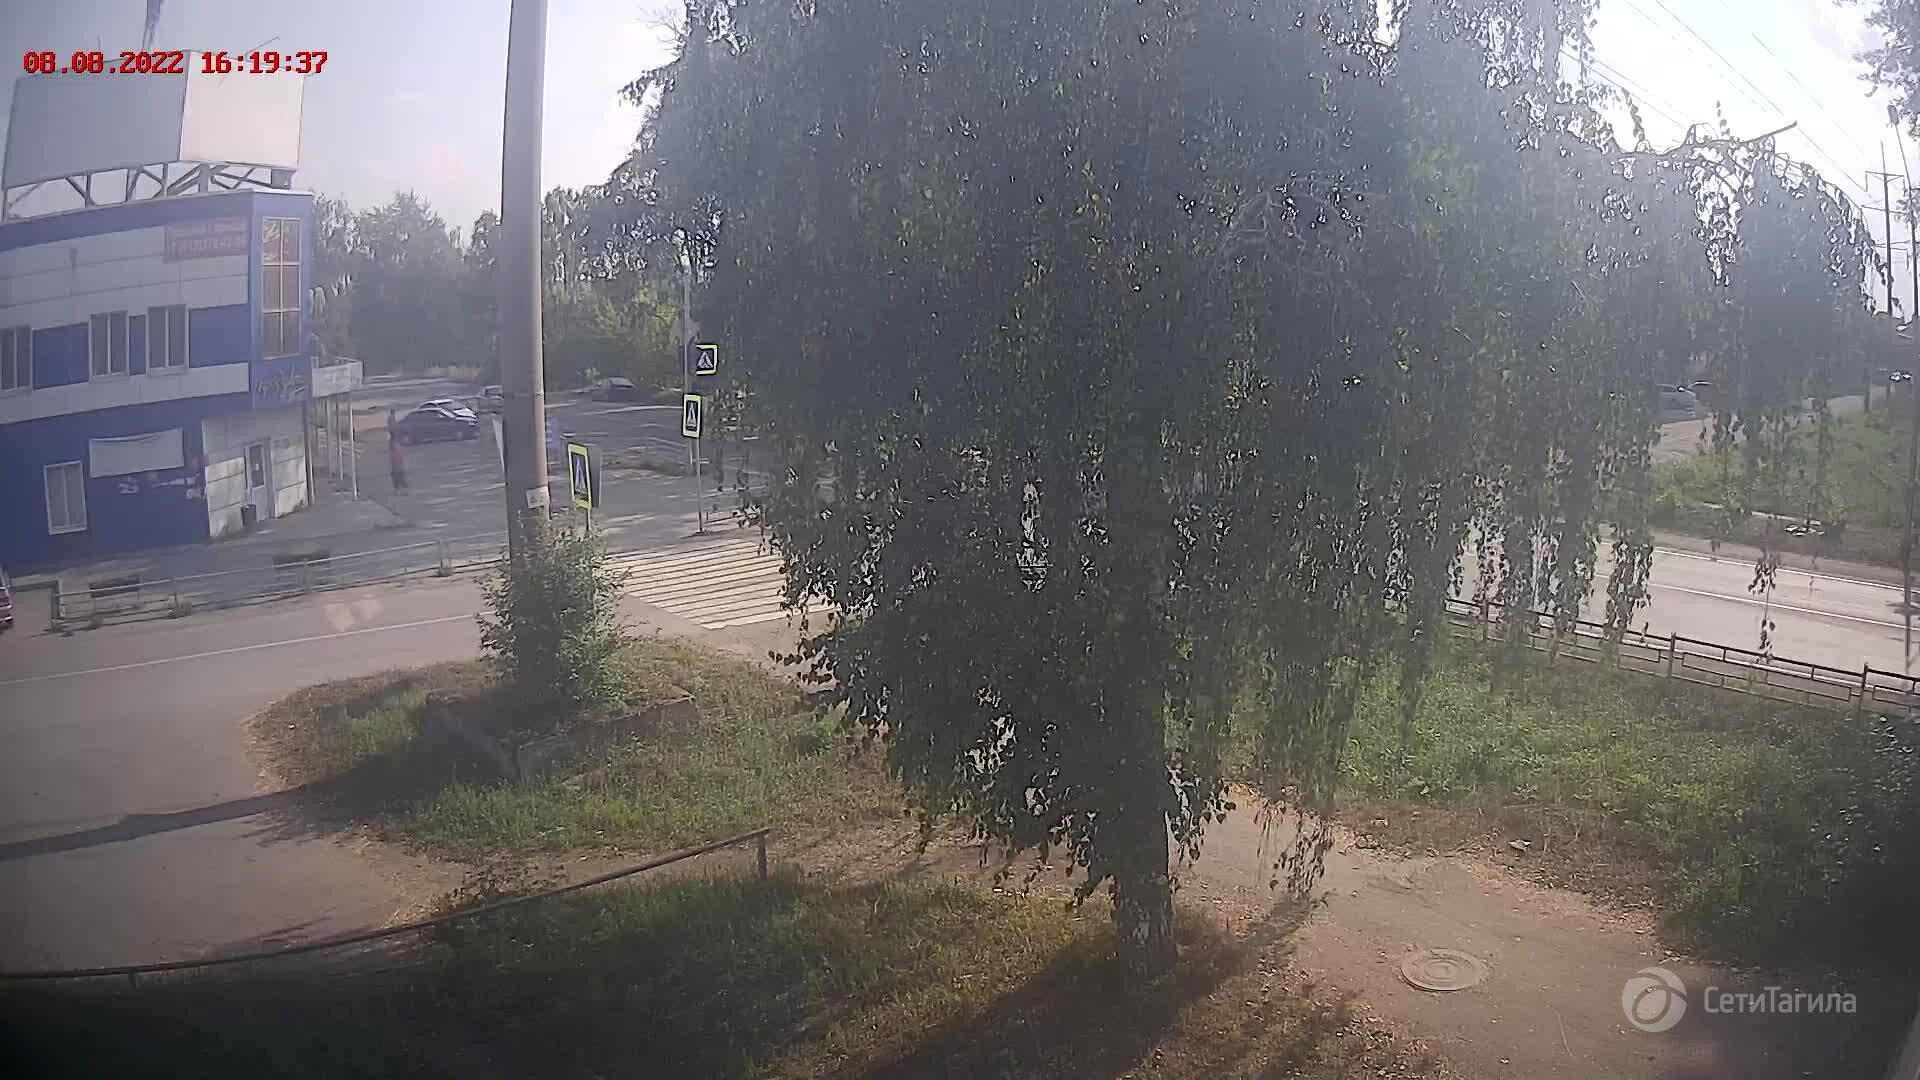 Webcam pedestrian crossing near school N 21, Nizhny Tagil, Sverdlovsk Region, Russia